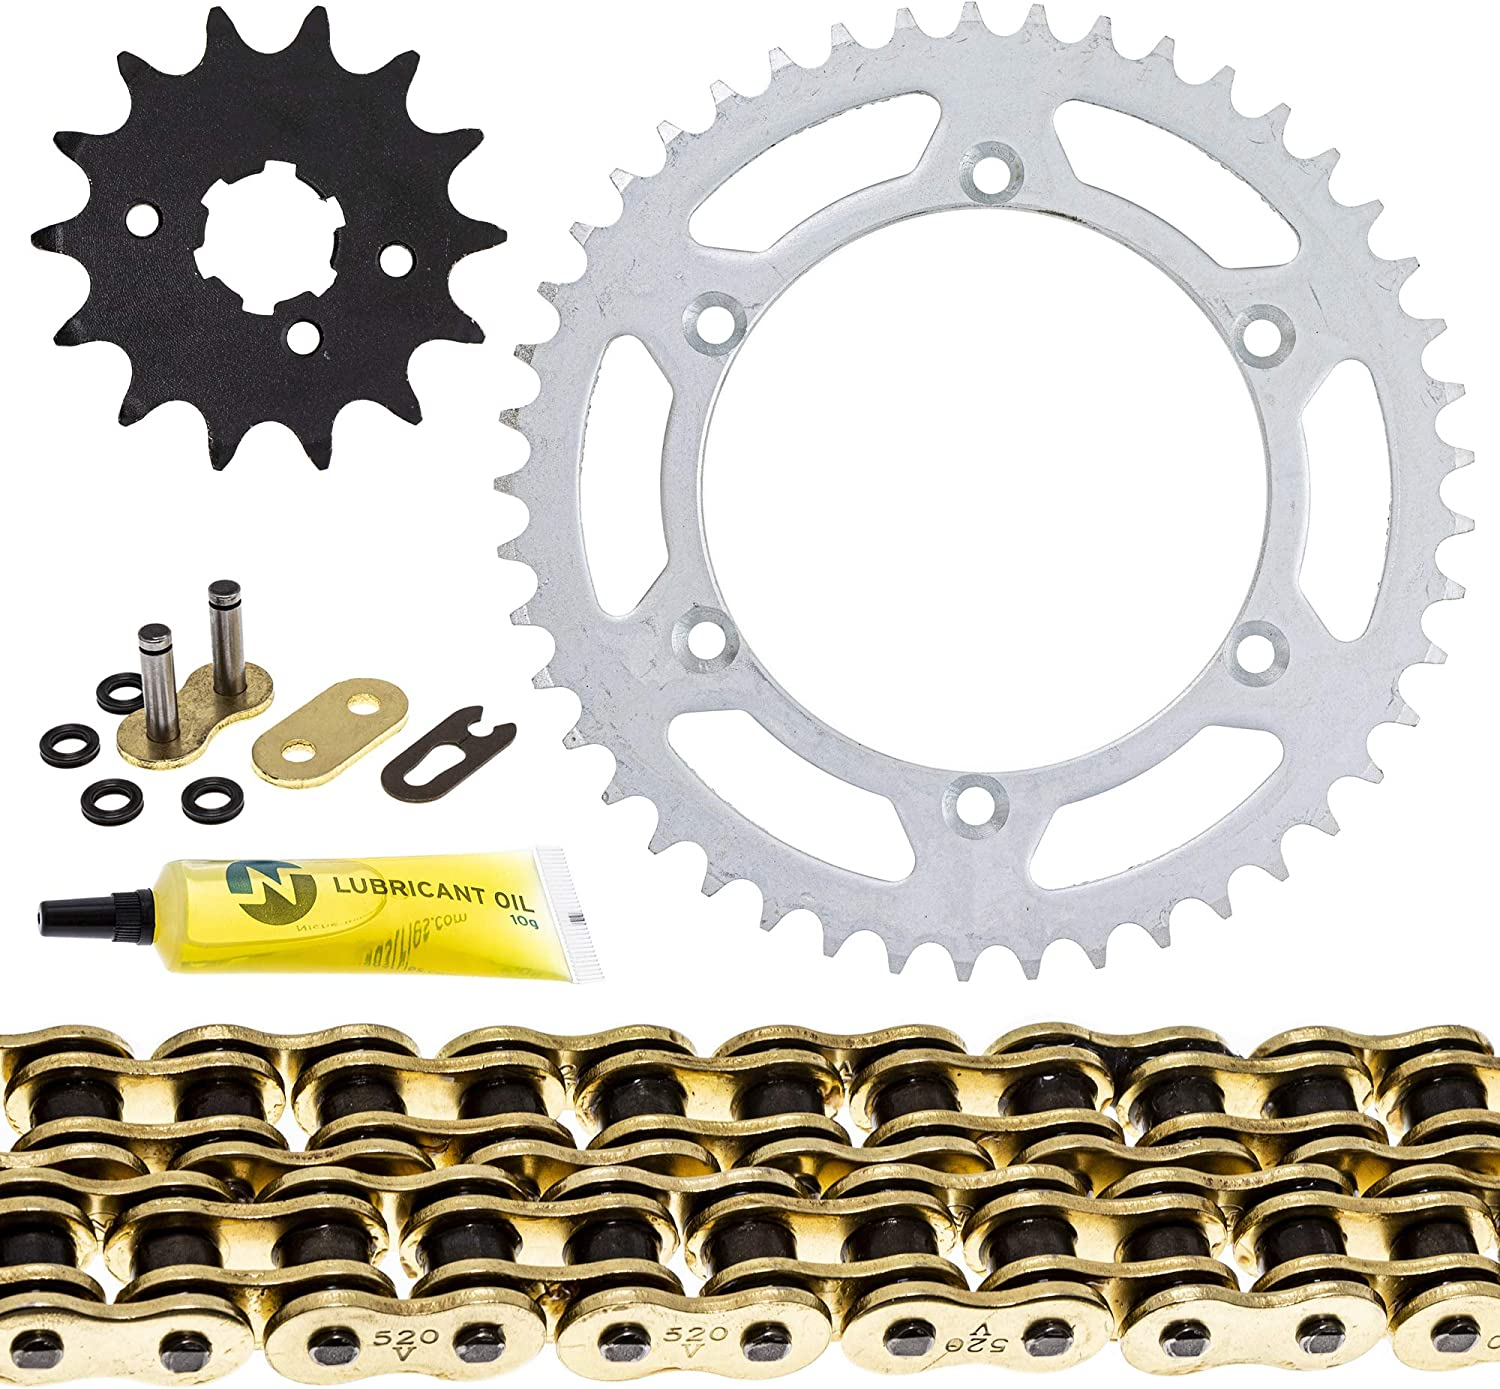 NICHE Drive Sprocket Chain Combo for Kawasaki KDX250 Front 14 Rear 45 Tooth 520V O-Ring 112 Links